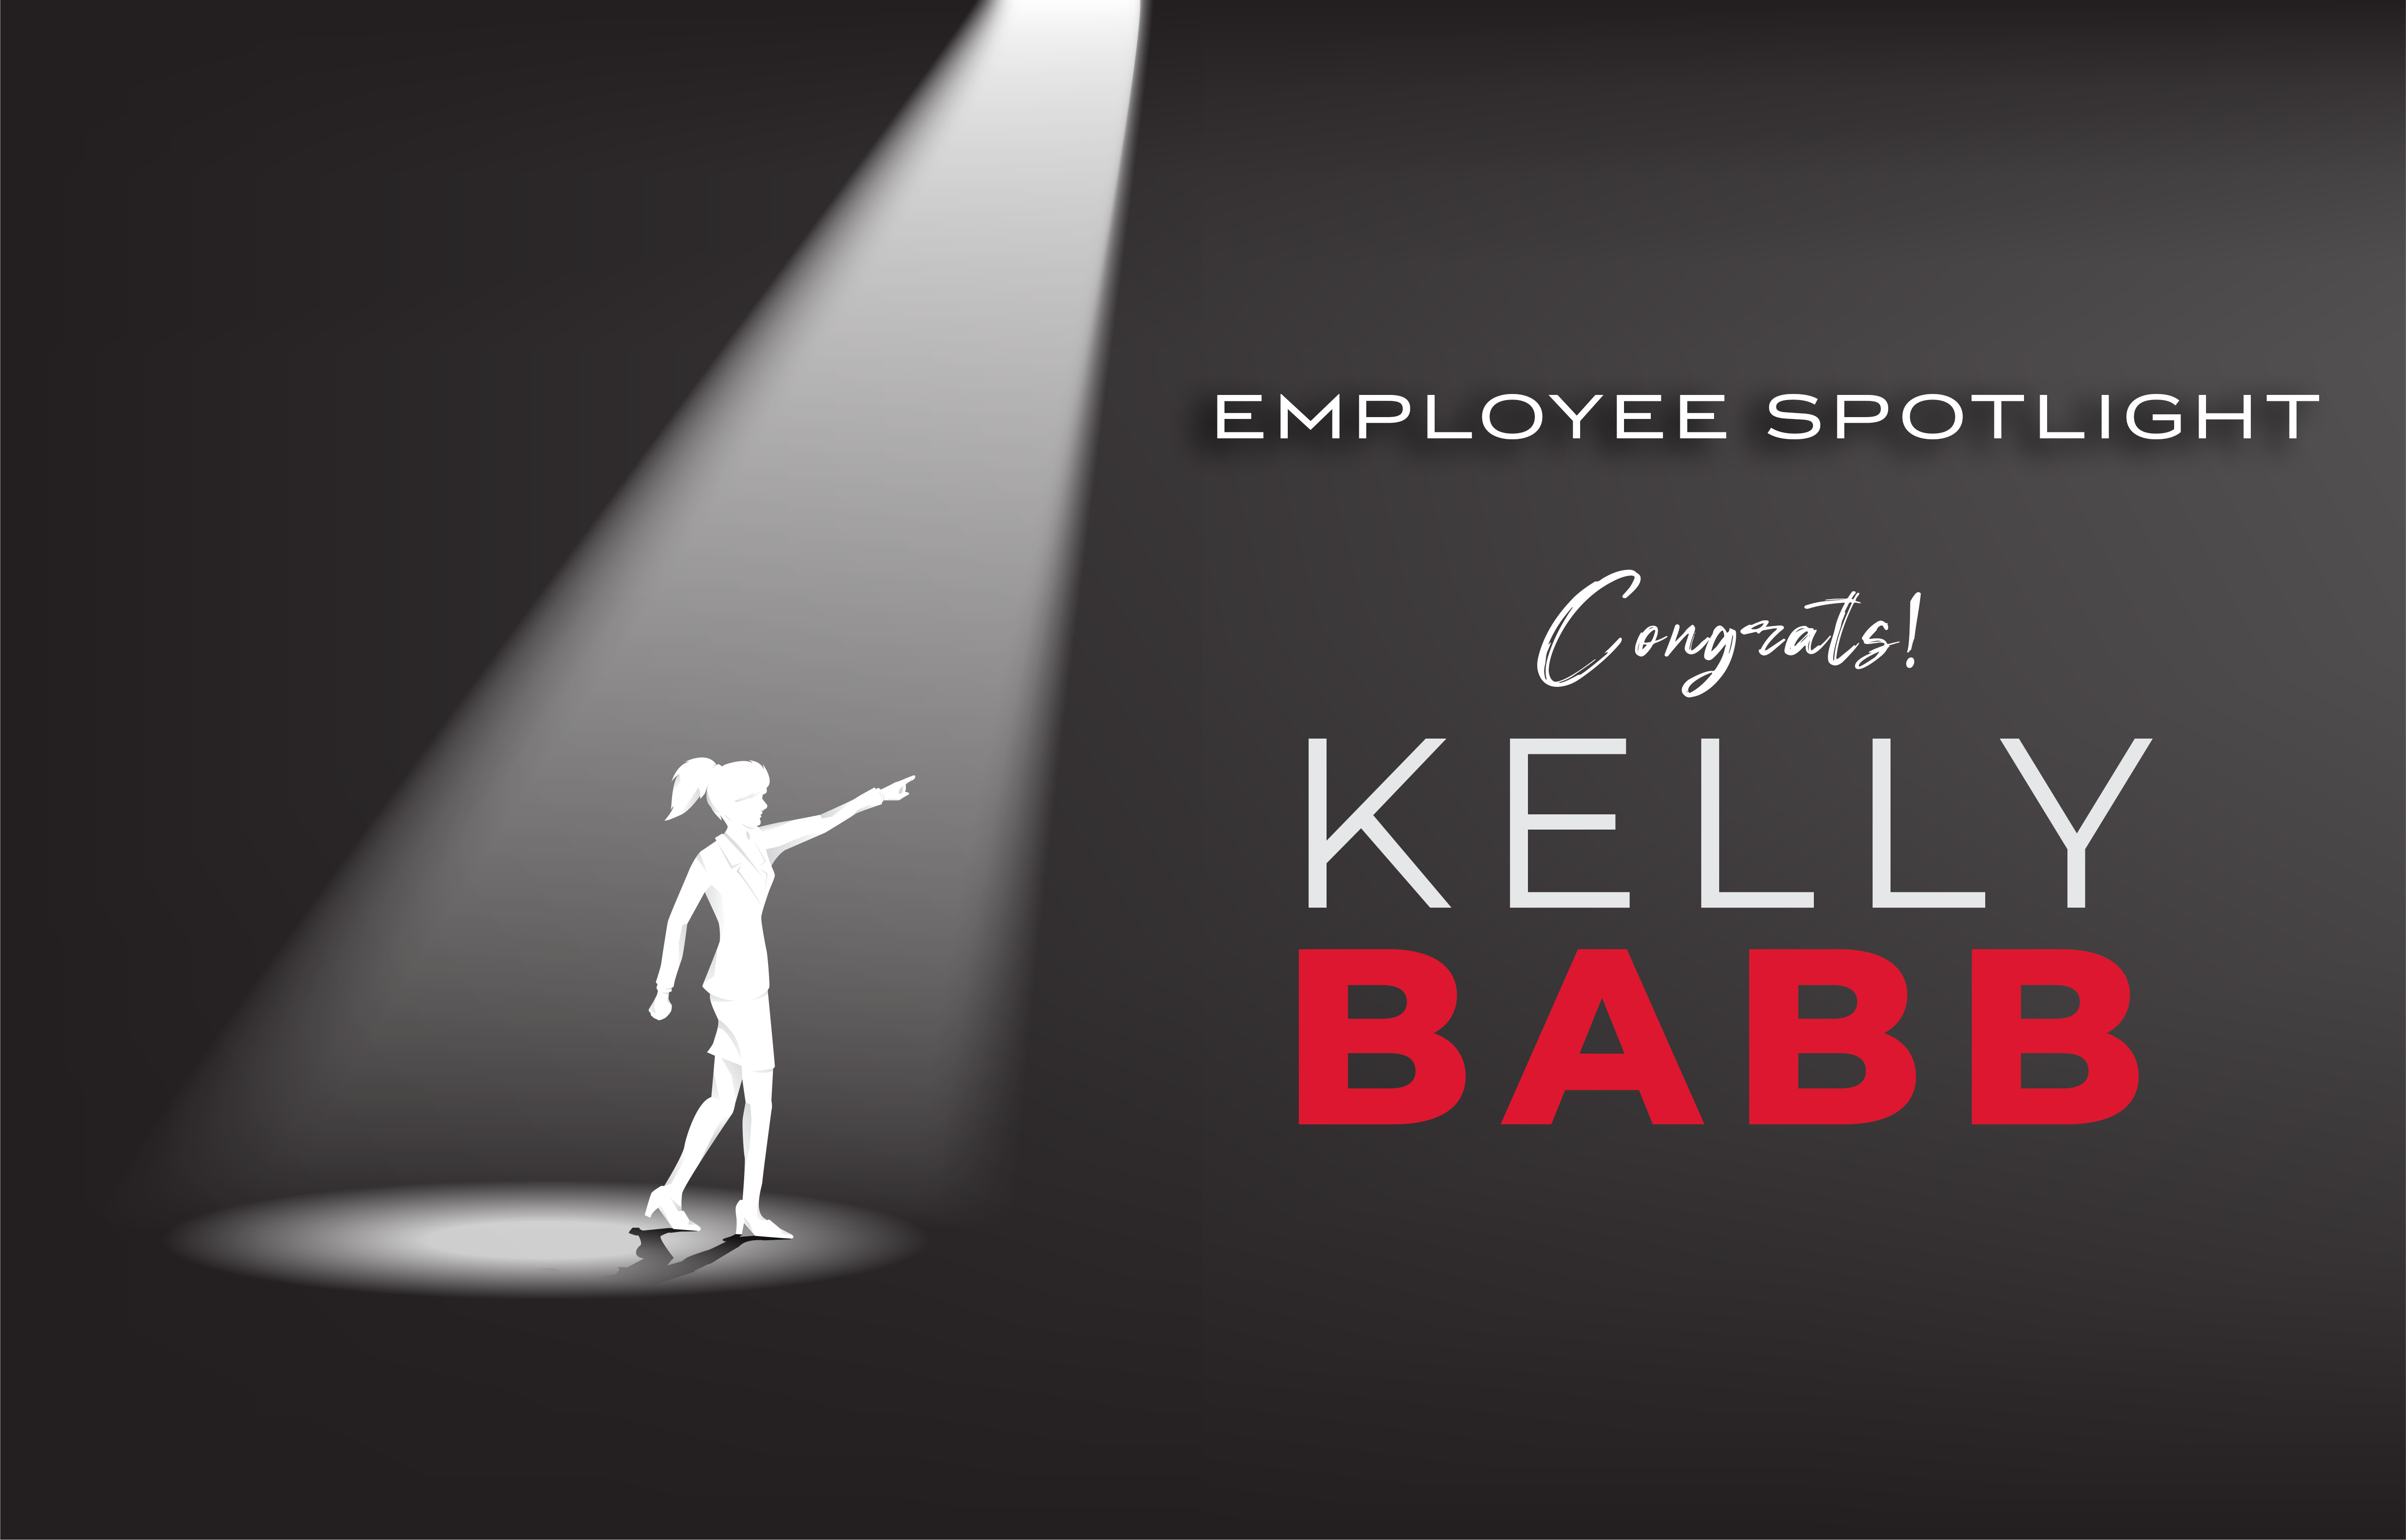 Employee Spotlight: Kelly Babb